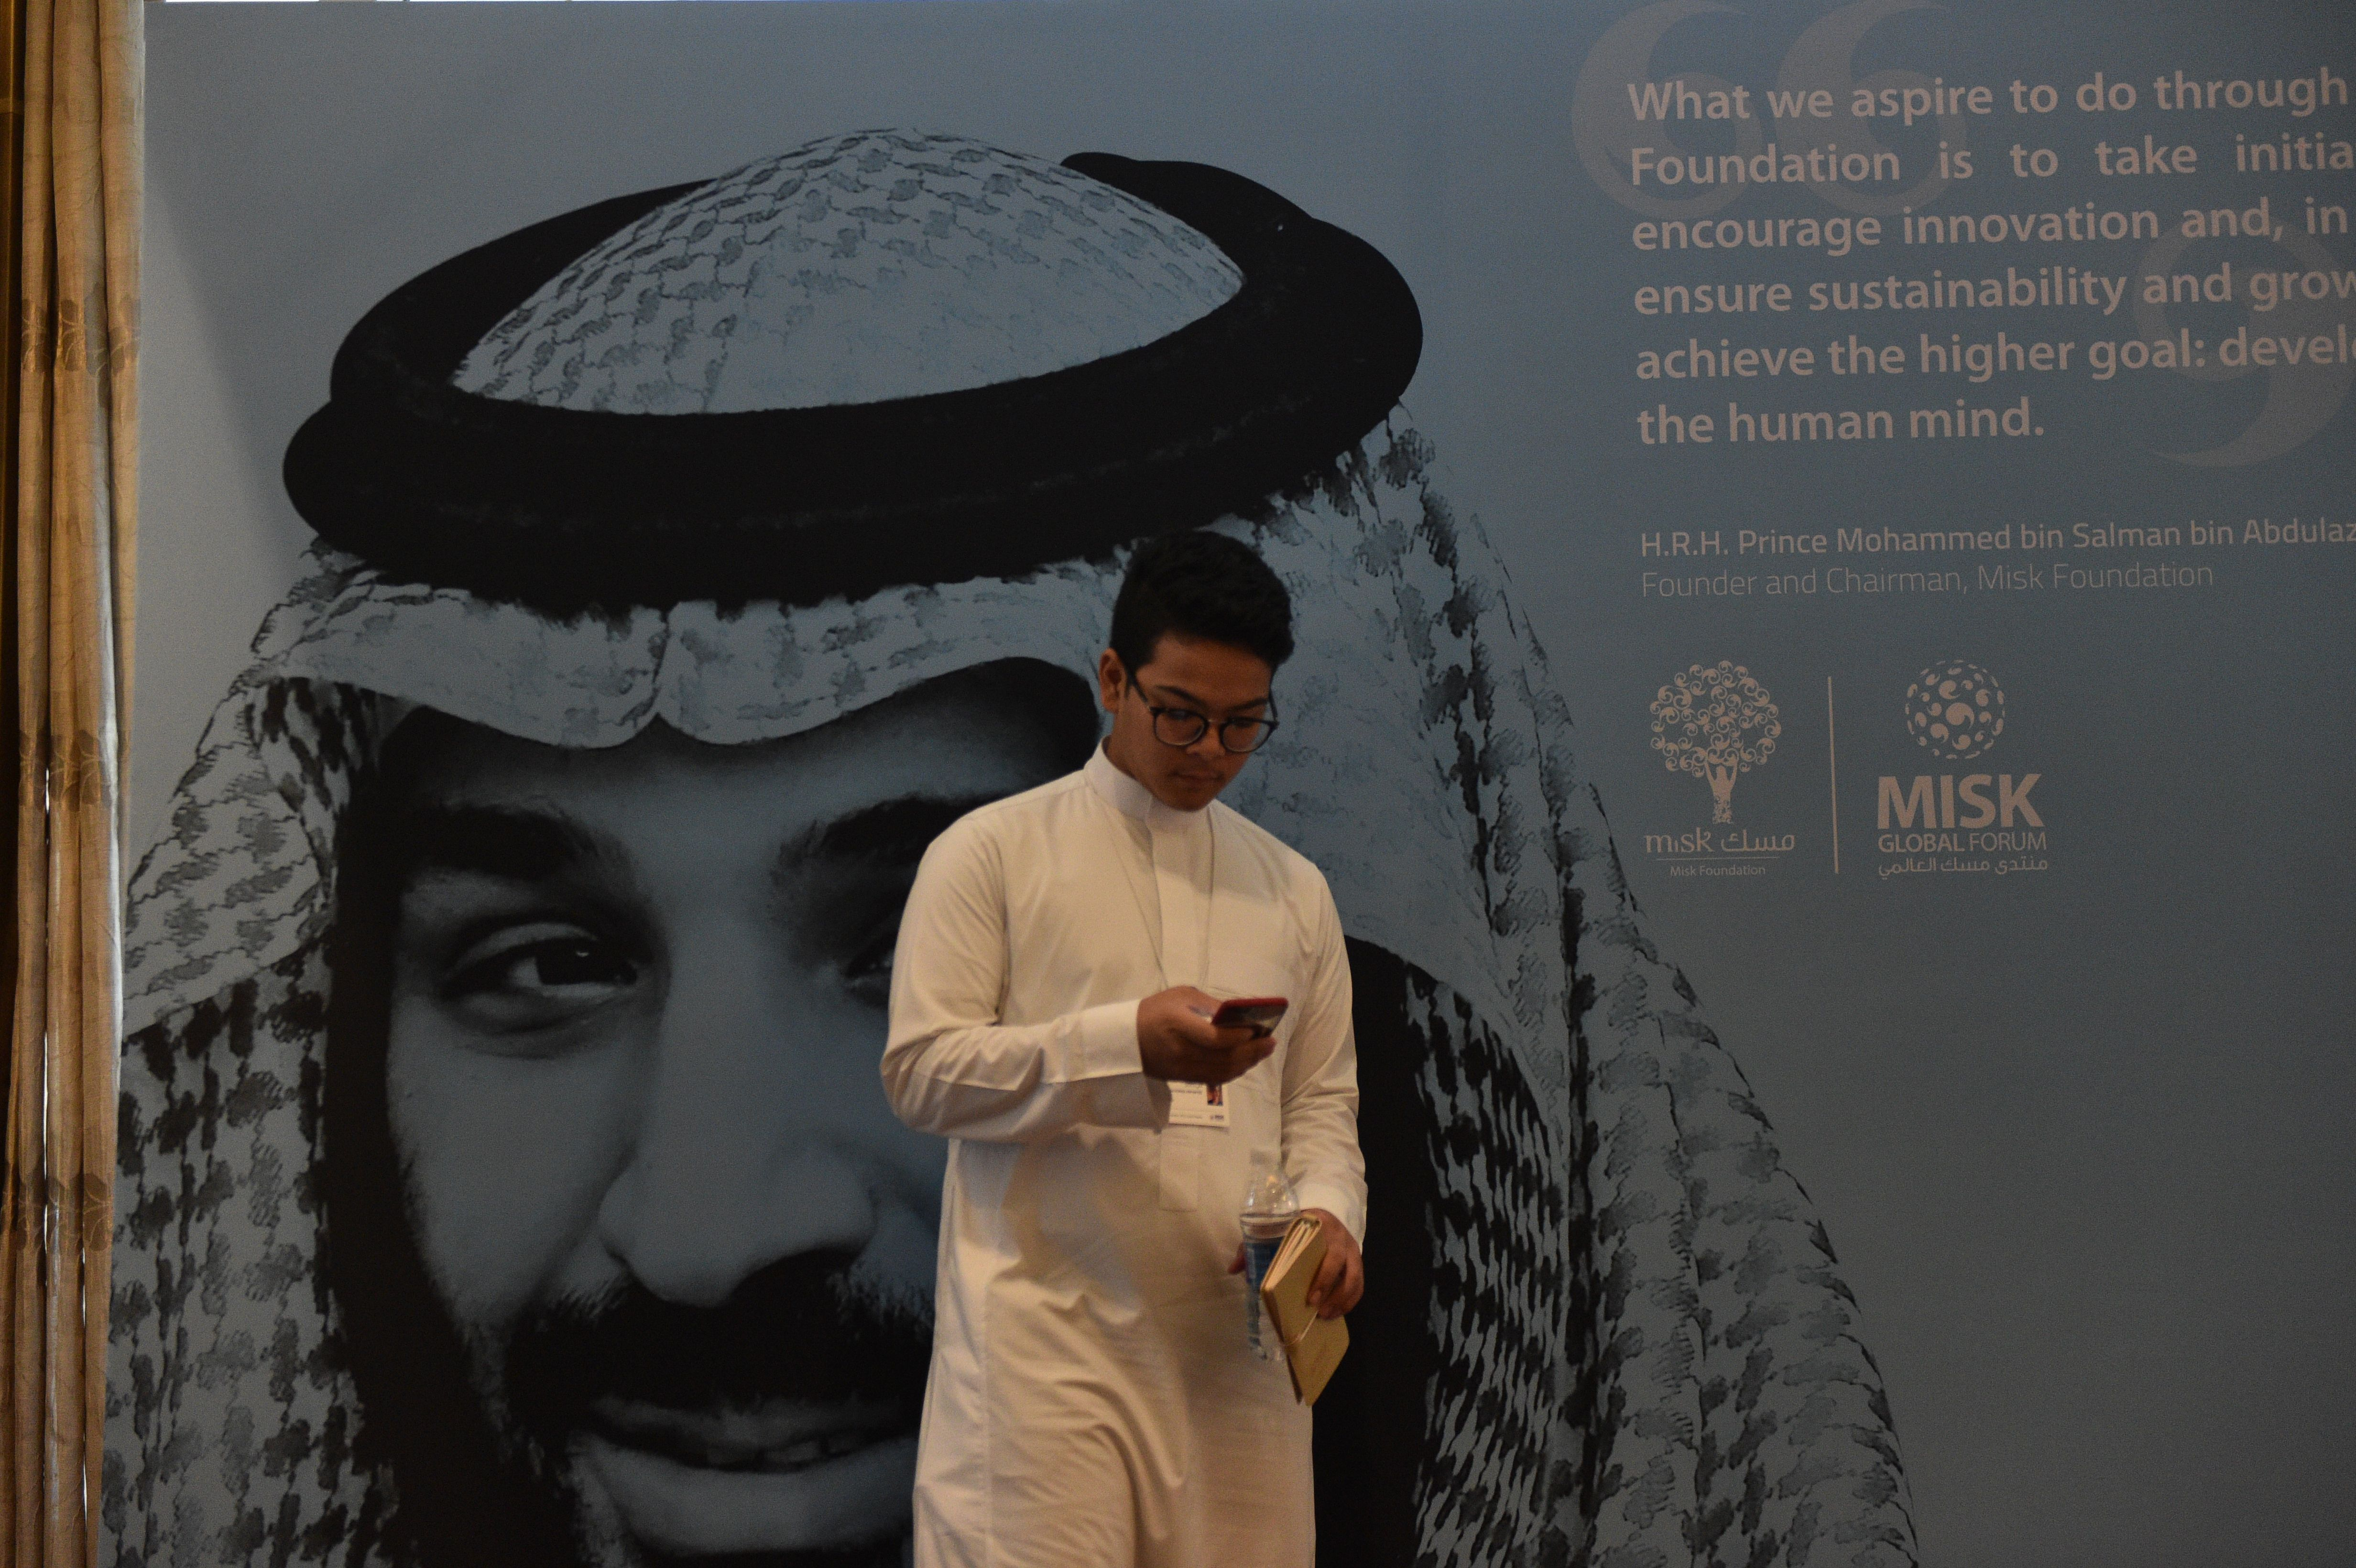 A young man in Saudi Arabia, where textbooks teach gay sex is punishable by death, stands in front of a portrait of Saudi Crown Prince Mohammed bin Salman.